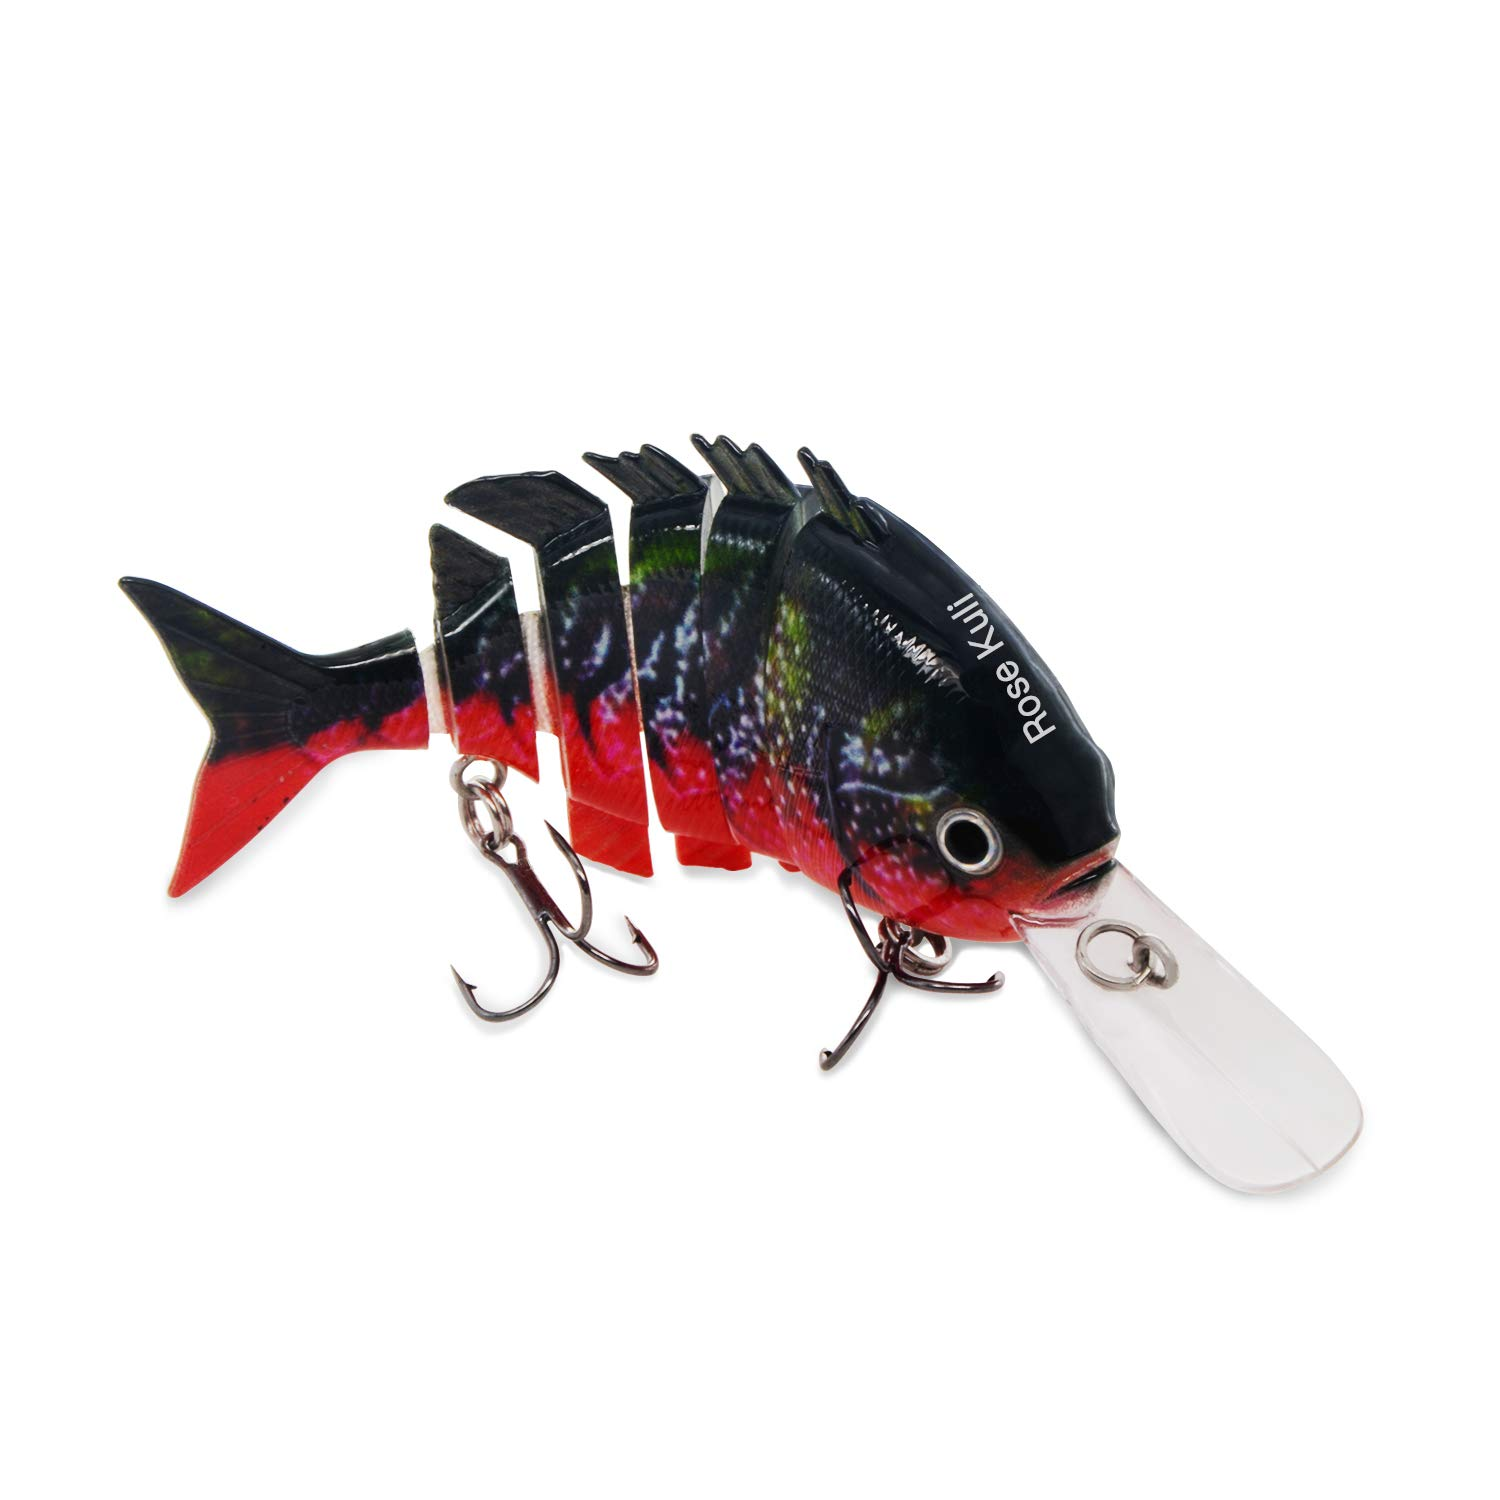 ROSE KULI Bass Fishing Baits Topwater Multi Jointed Lures Hard Life-Like Trout CrankBaits Red by ROSE KULI